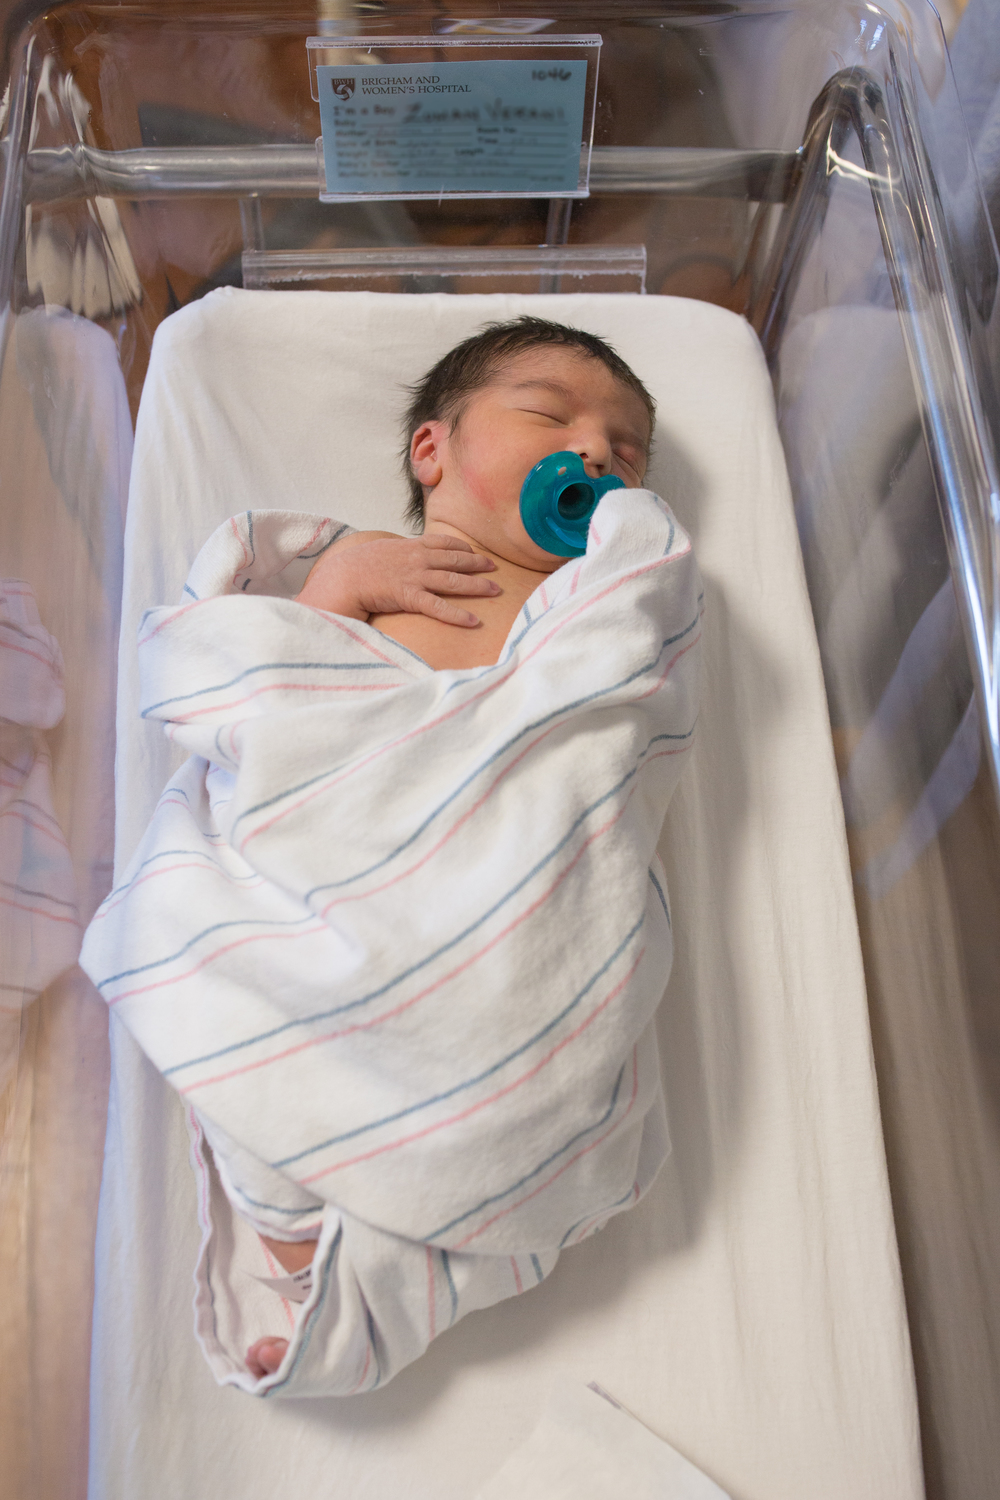 Newborn baby at Brigham and Women's hospital in Boston Massachusetts in bassinet